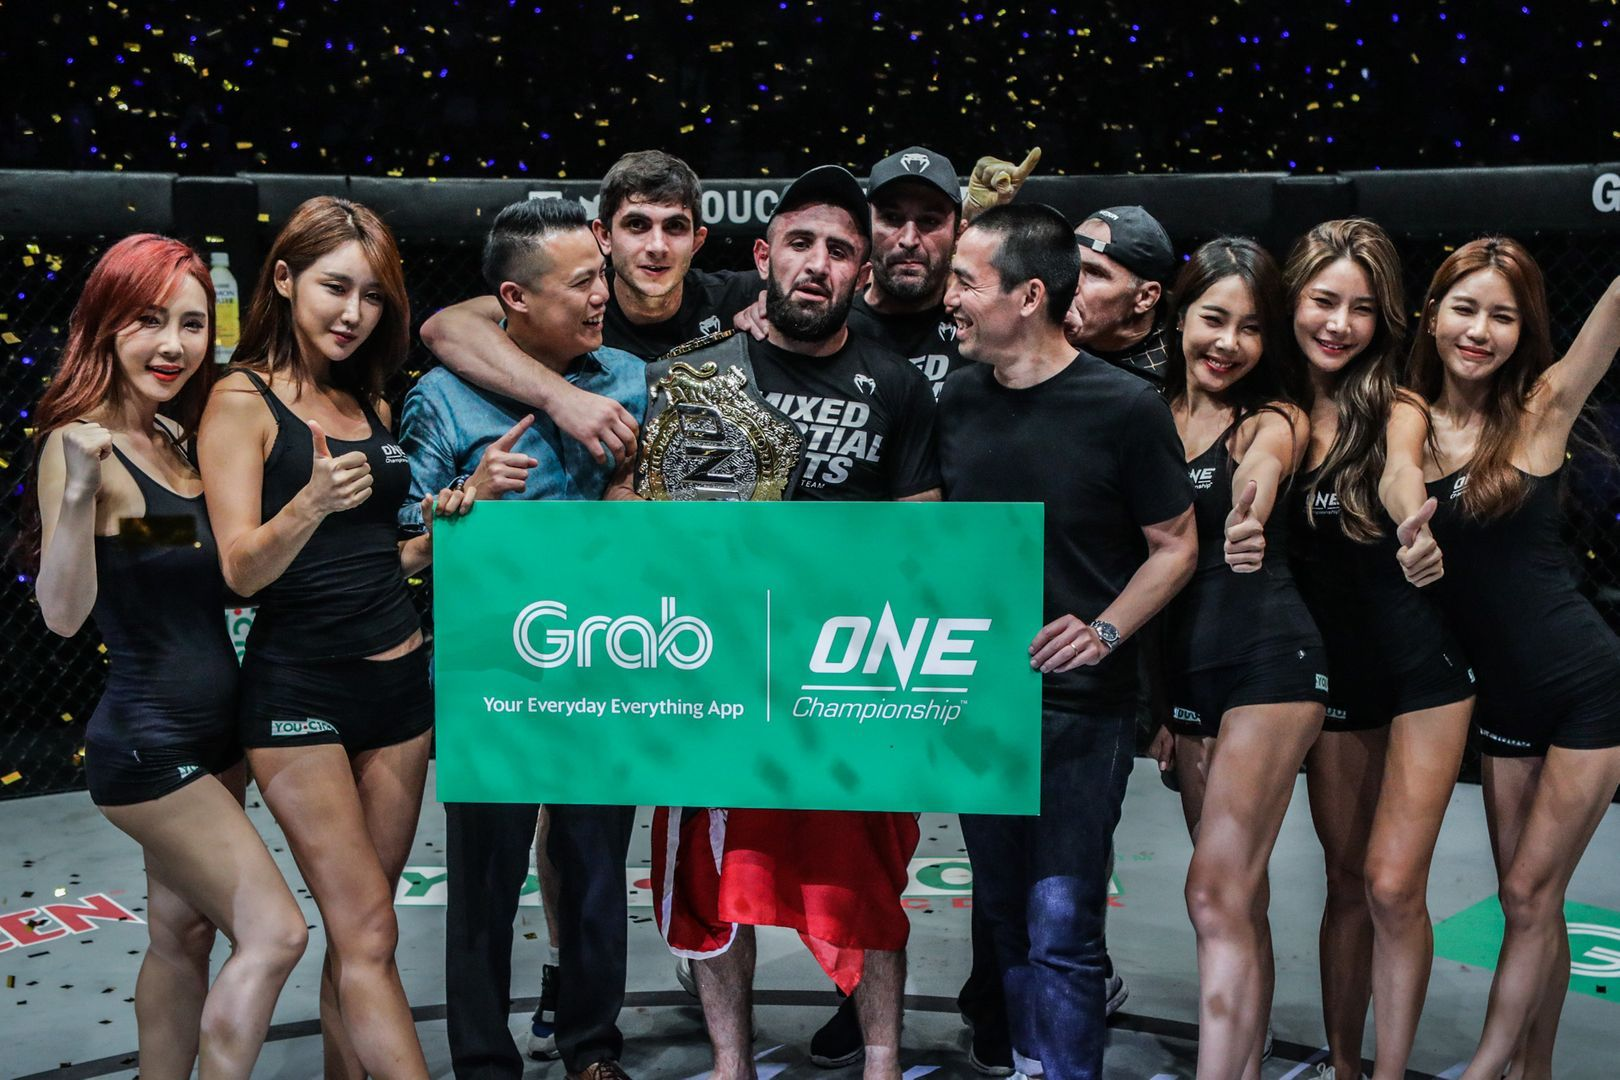 New ONE Welterweight World Champion Kiamrian Abbasov following his win in Jakarta, Indonesia in October 2019